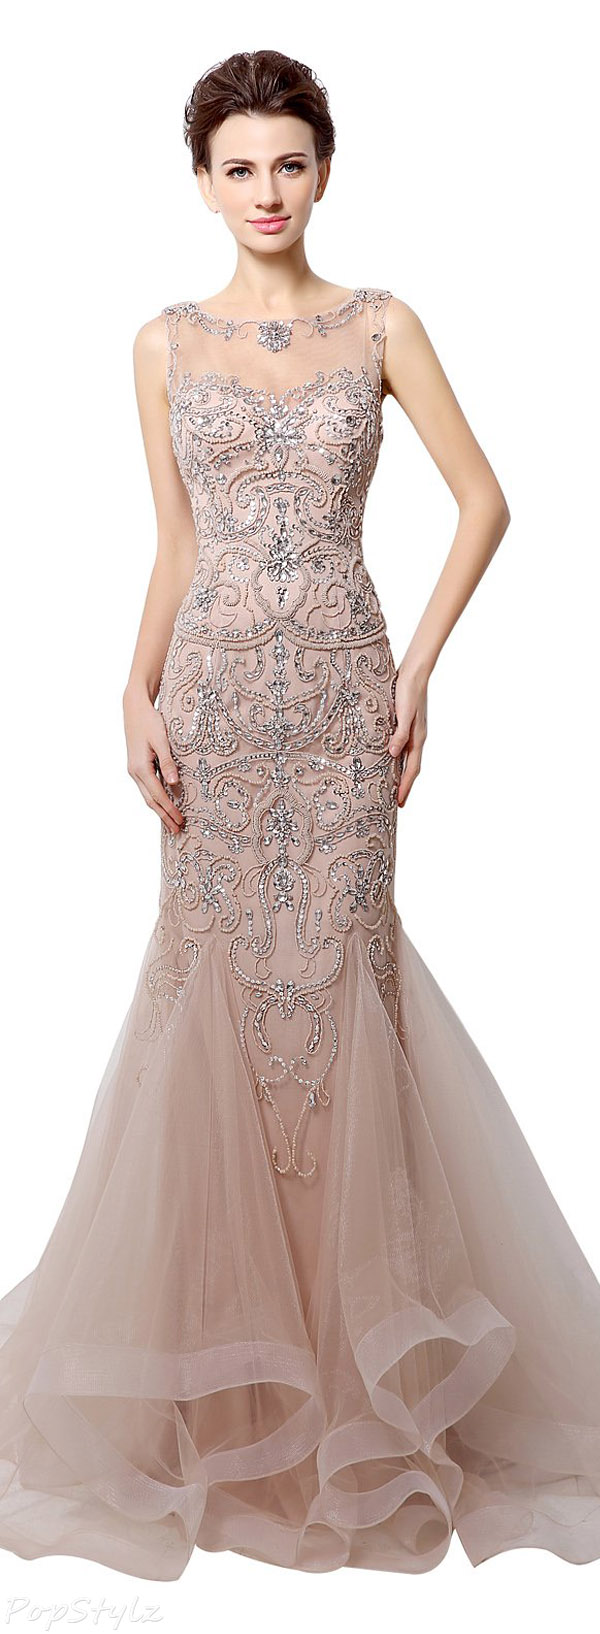 Sarahbridal 2016 Tulle Beaded Mermaid Evening Gown